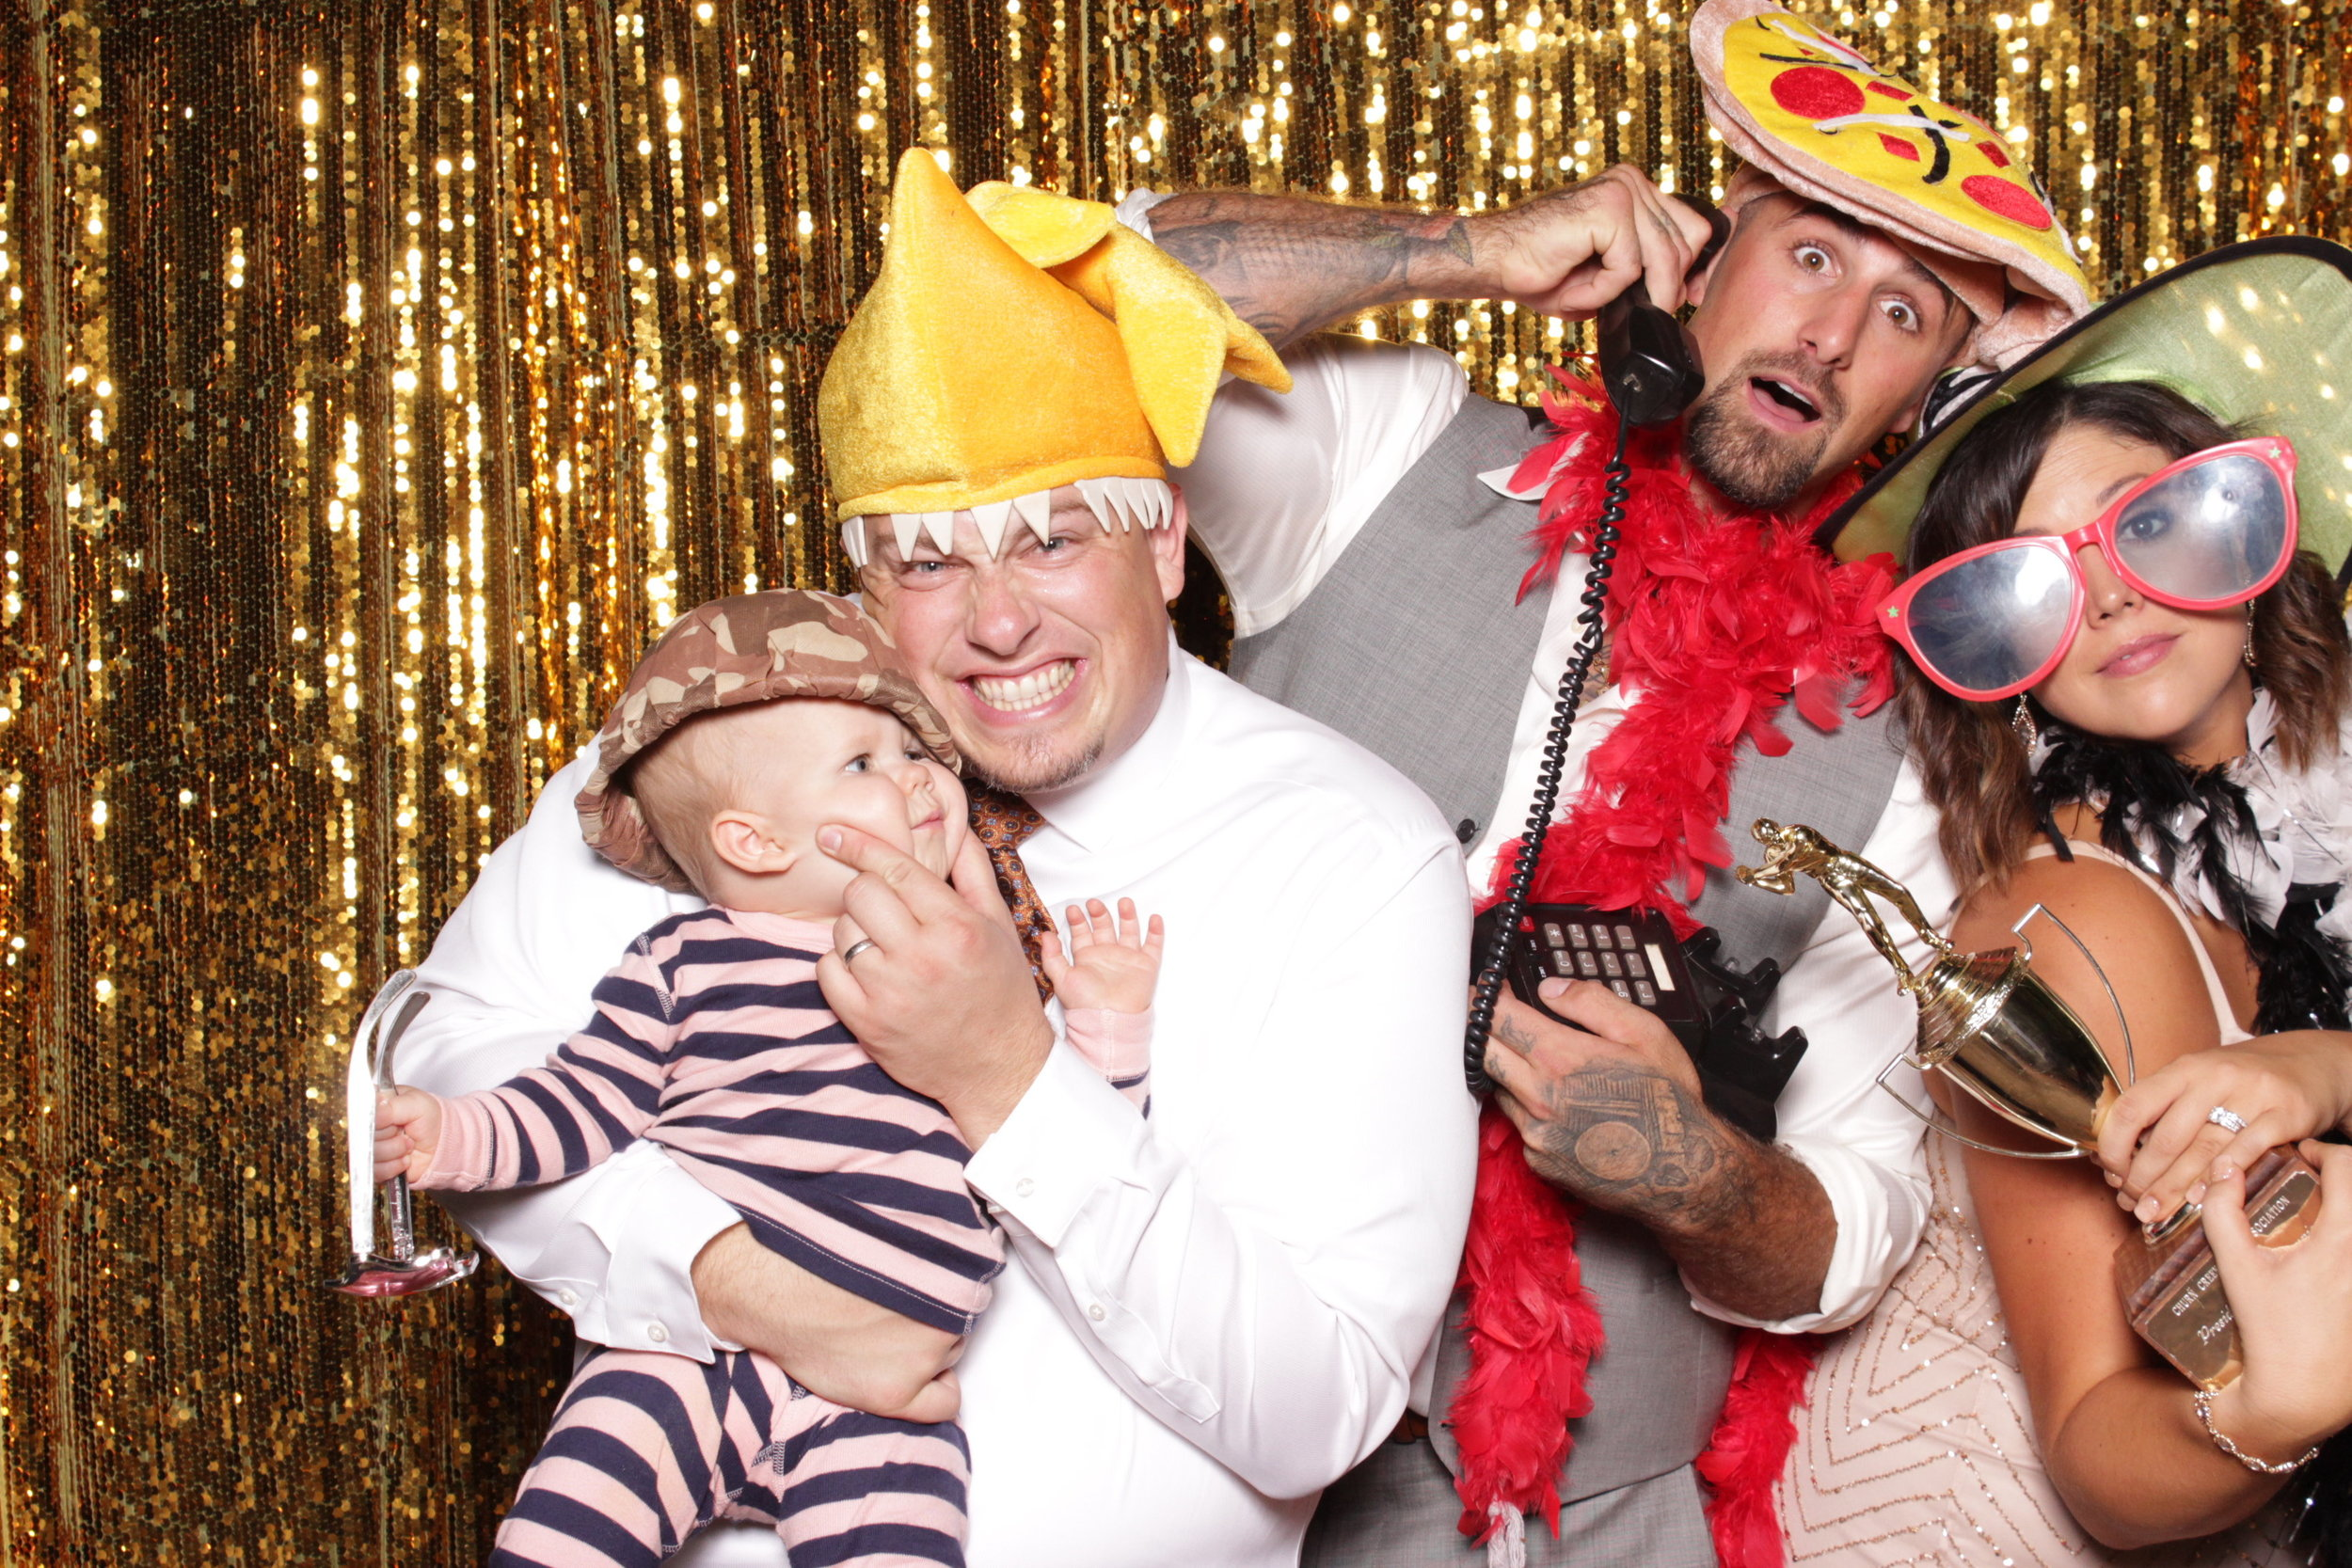 photo-booths-in-chico-rental-wedding-baby-friendly